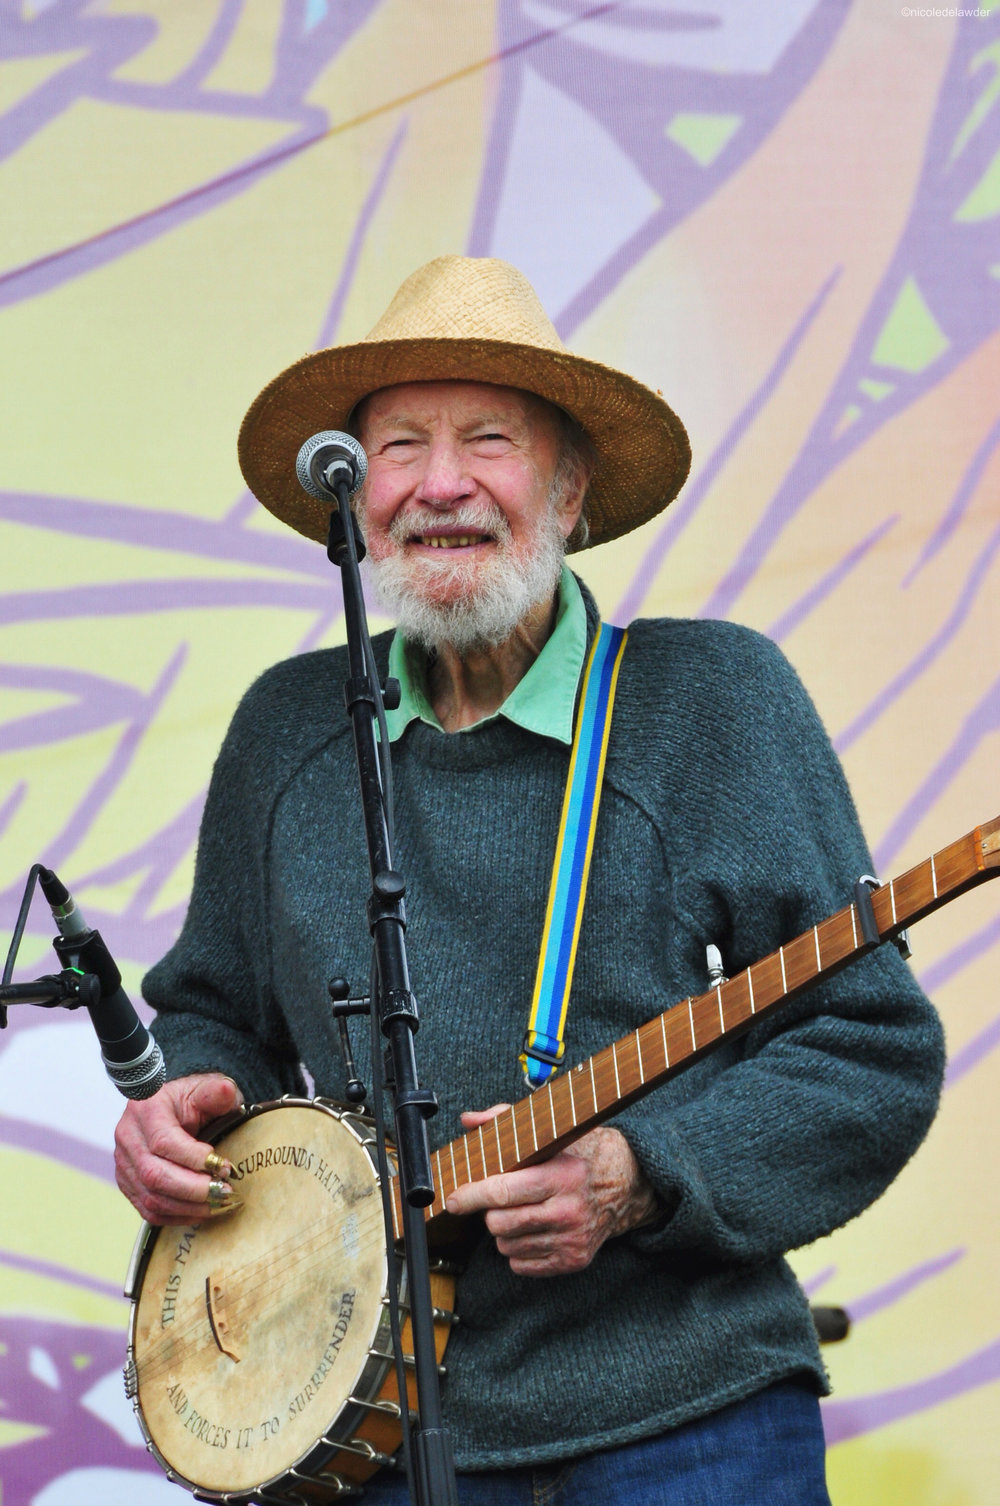 Pete Seeger at the Beacon Centennial Celebration in 2013.  Photo by Niki DeLawder.